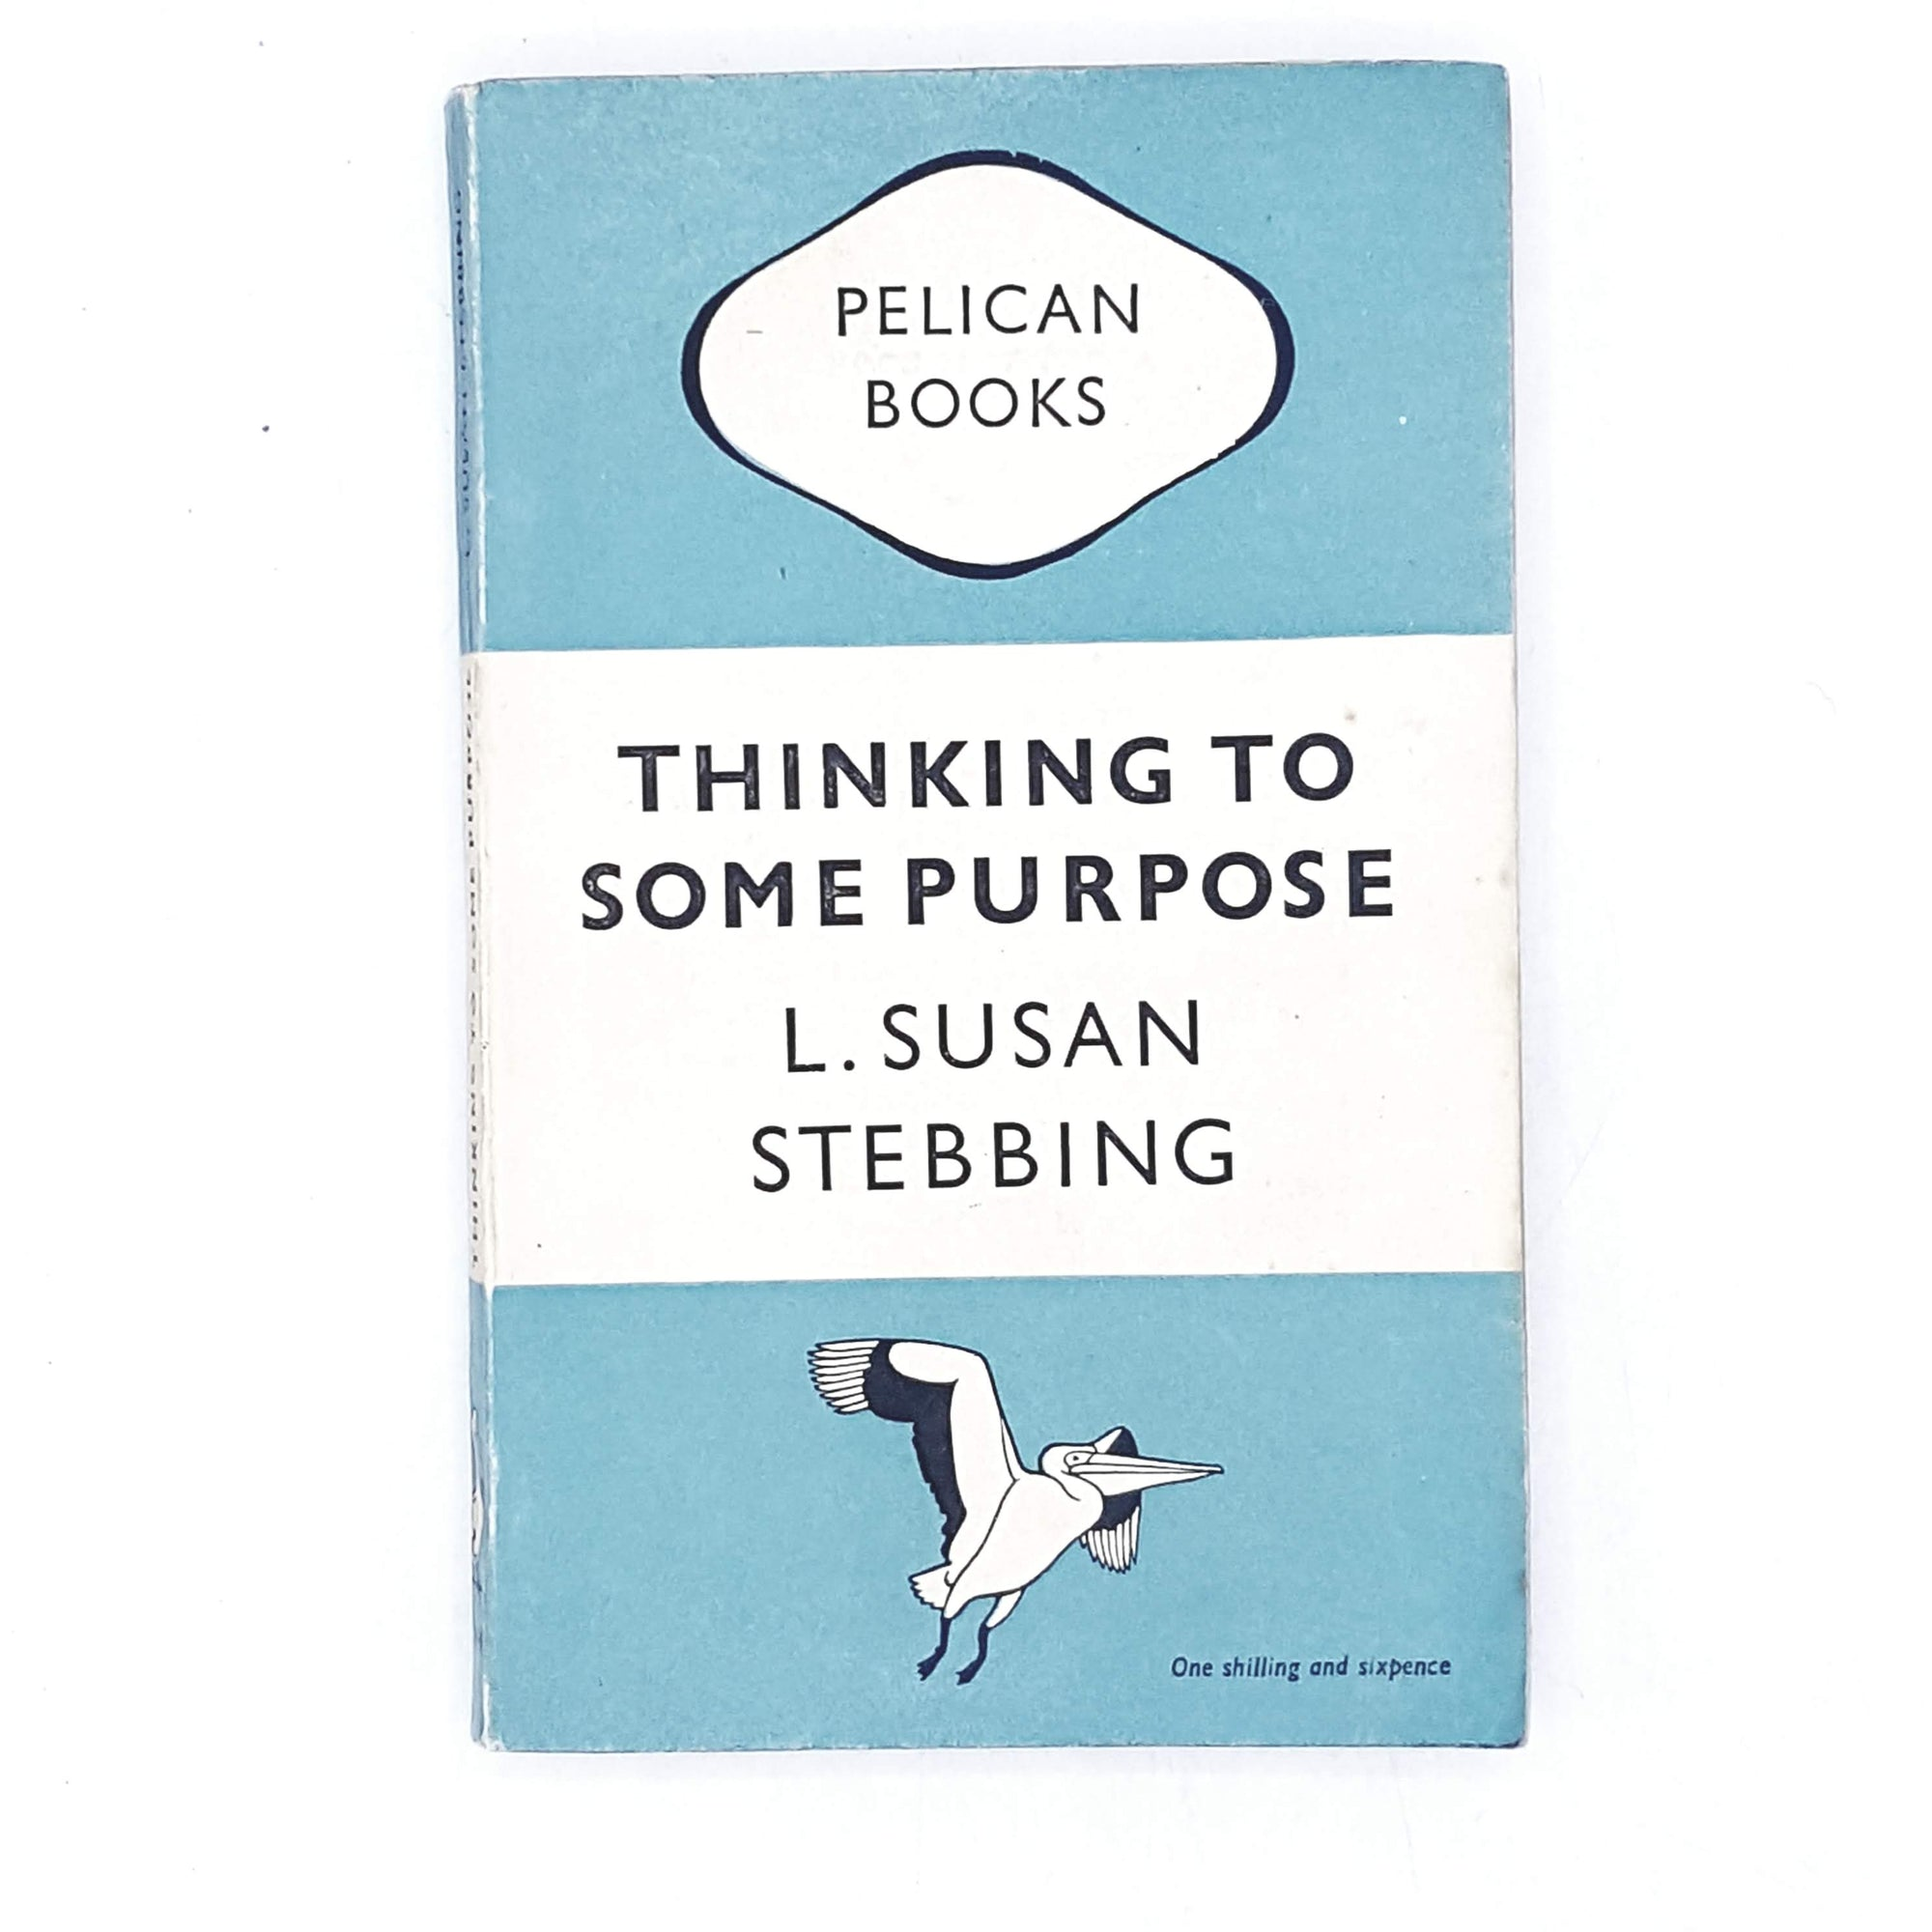 Thinking to Some Purpose by L. Susan Stebbing 1948